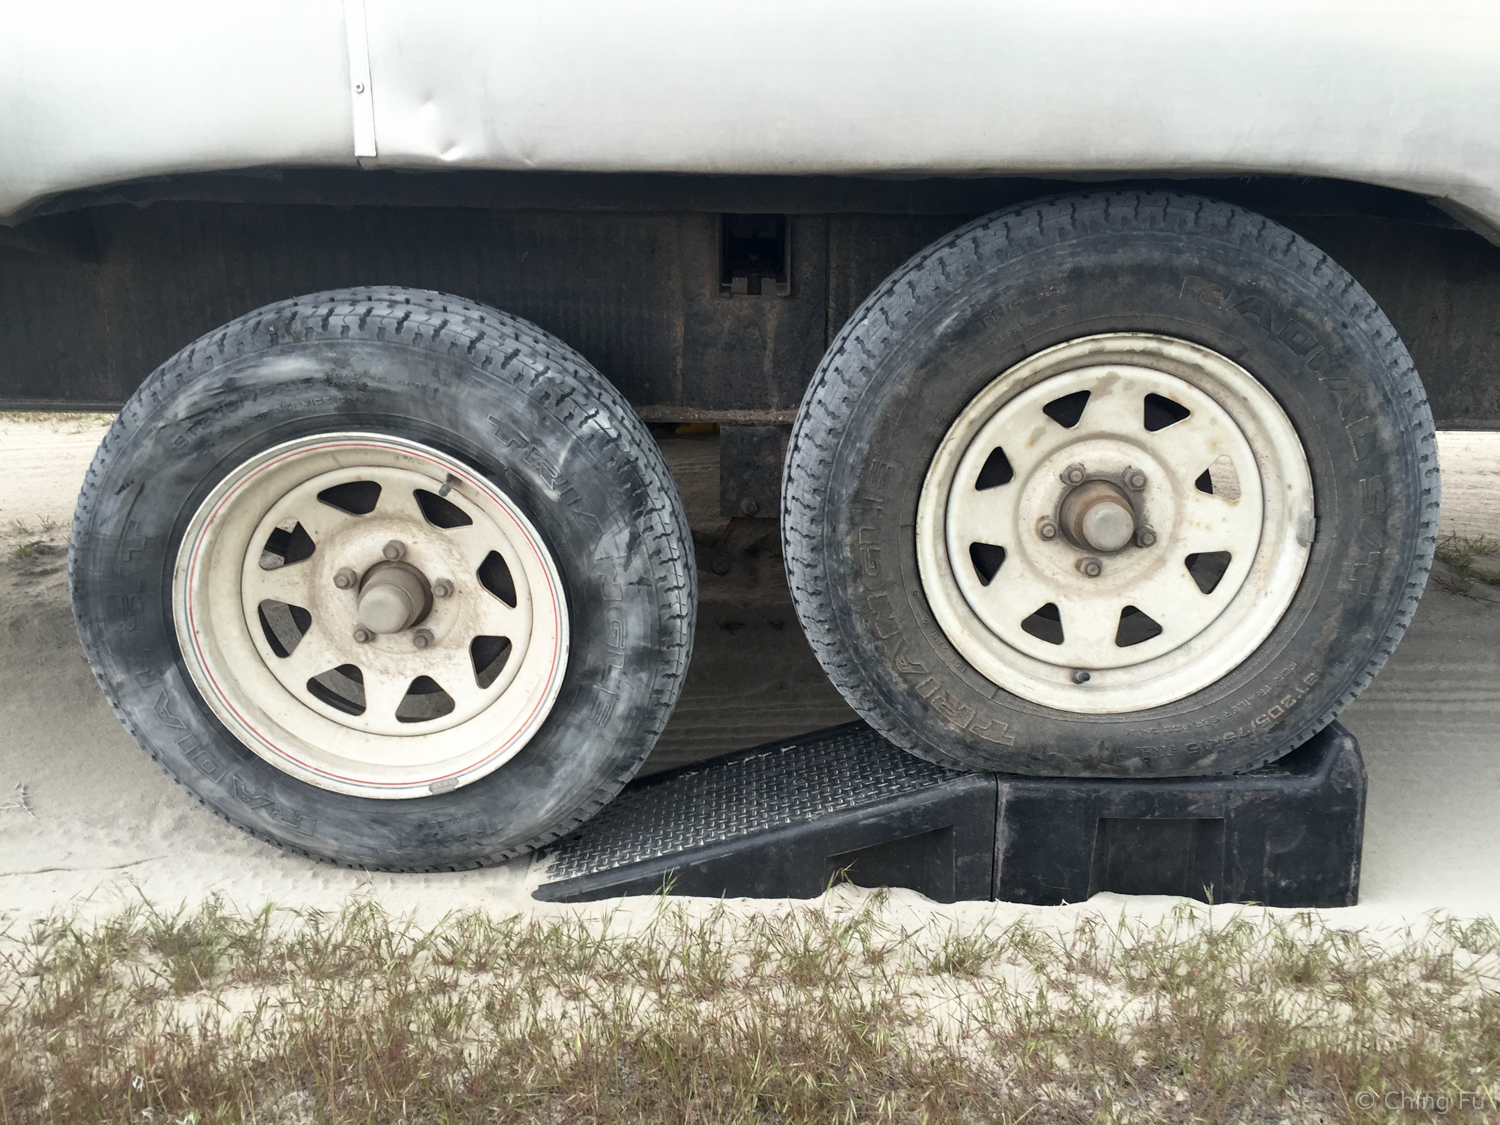 One of the trailer wheels on a ramp.